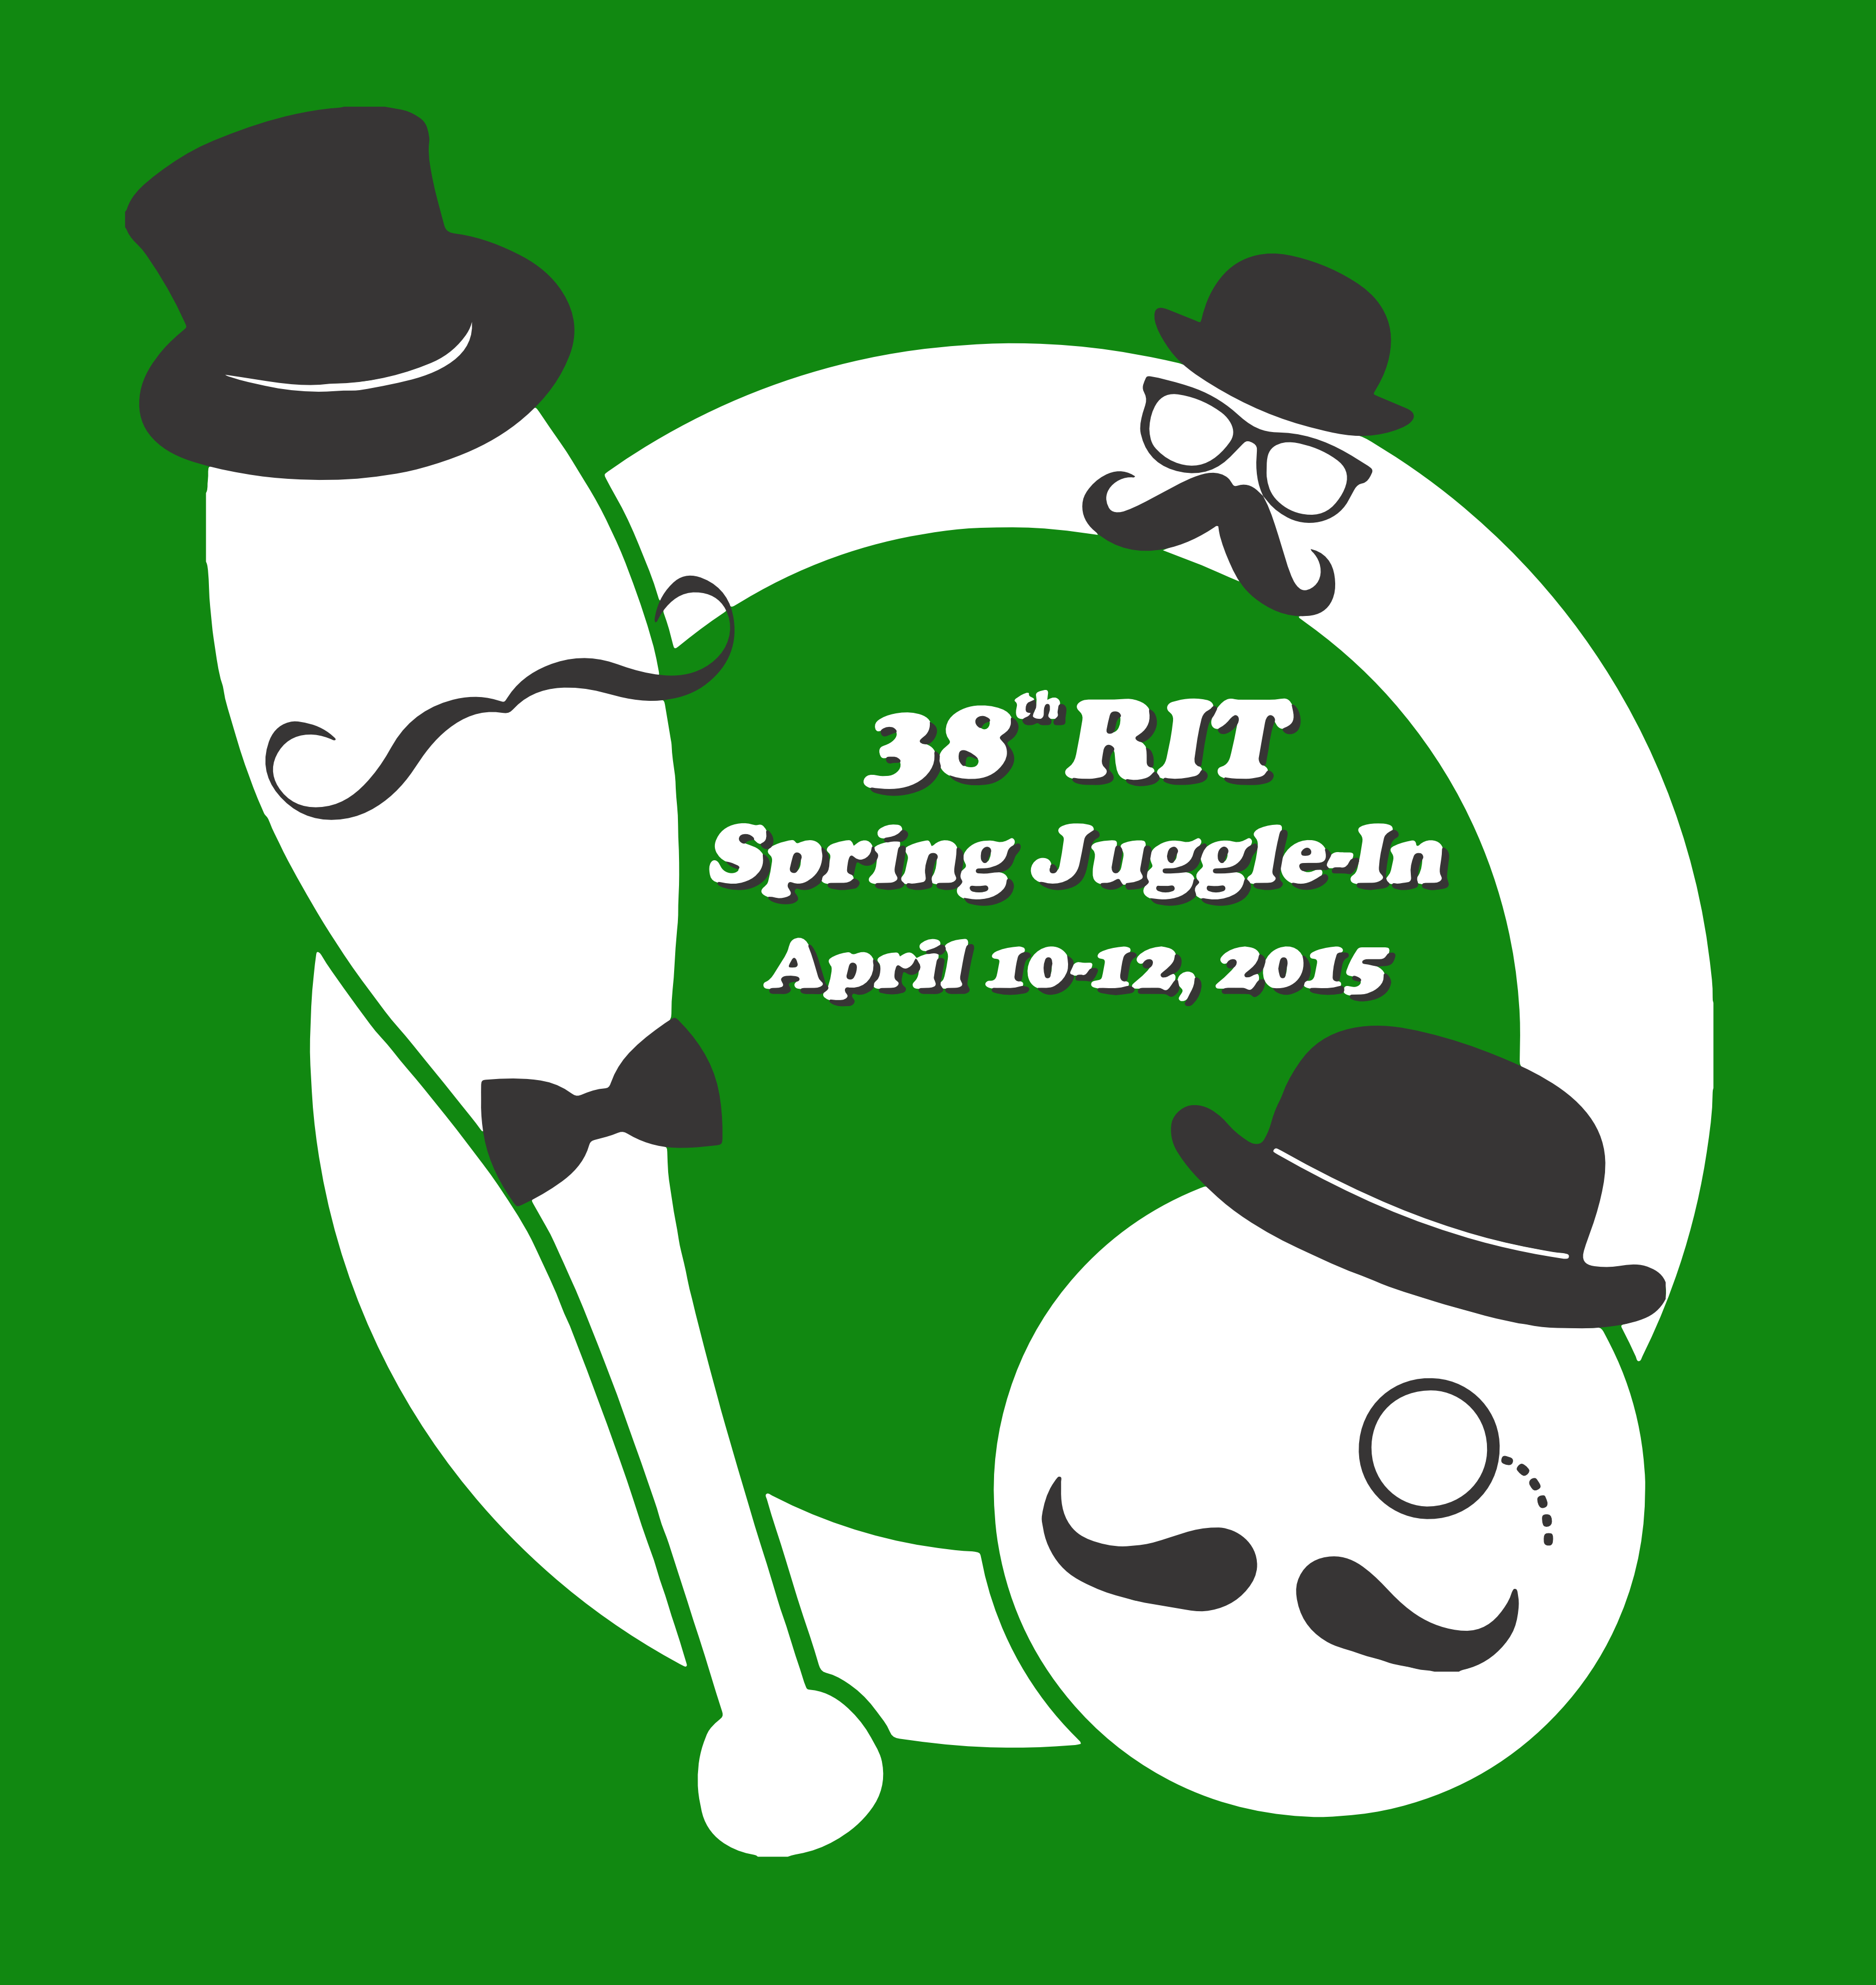 th rit juggle. Raffle clipart spring